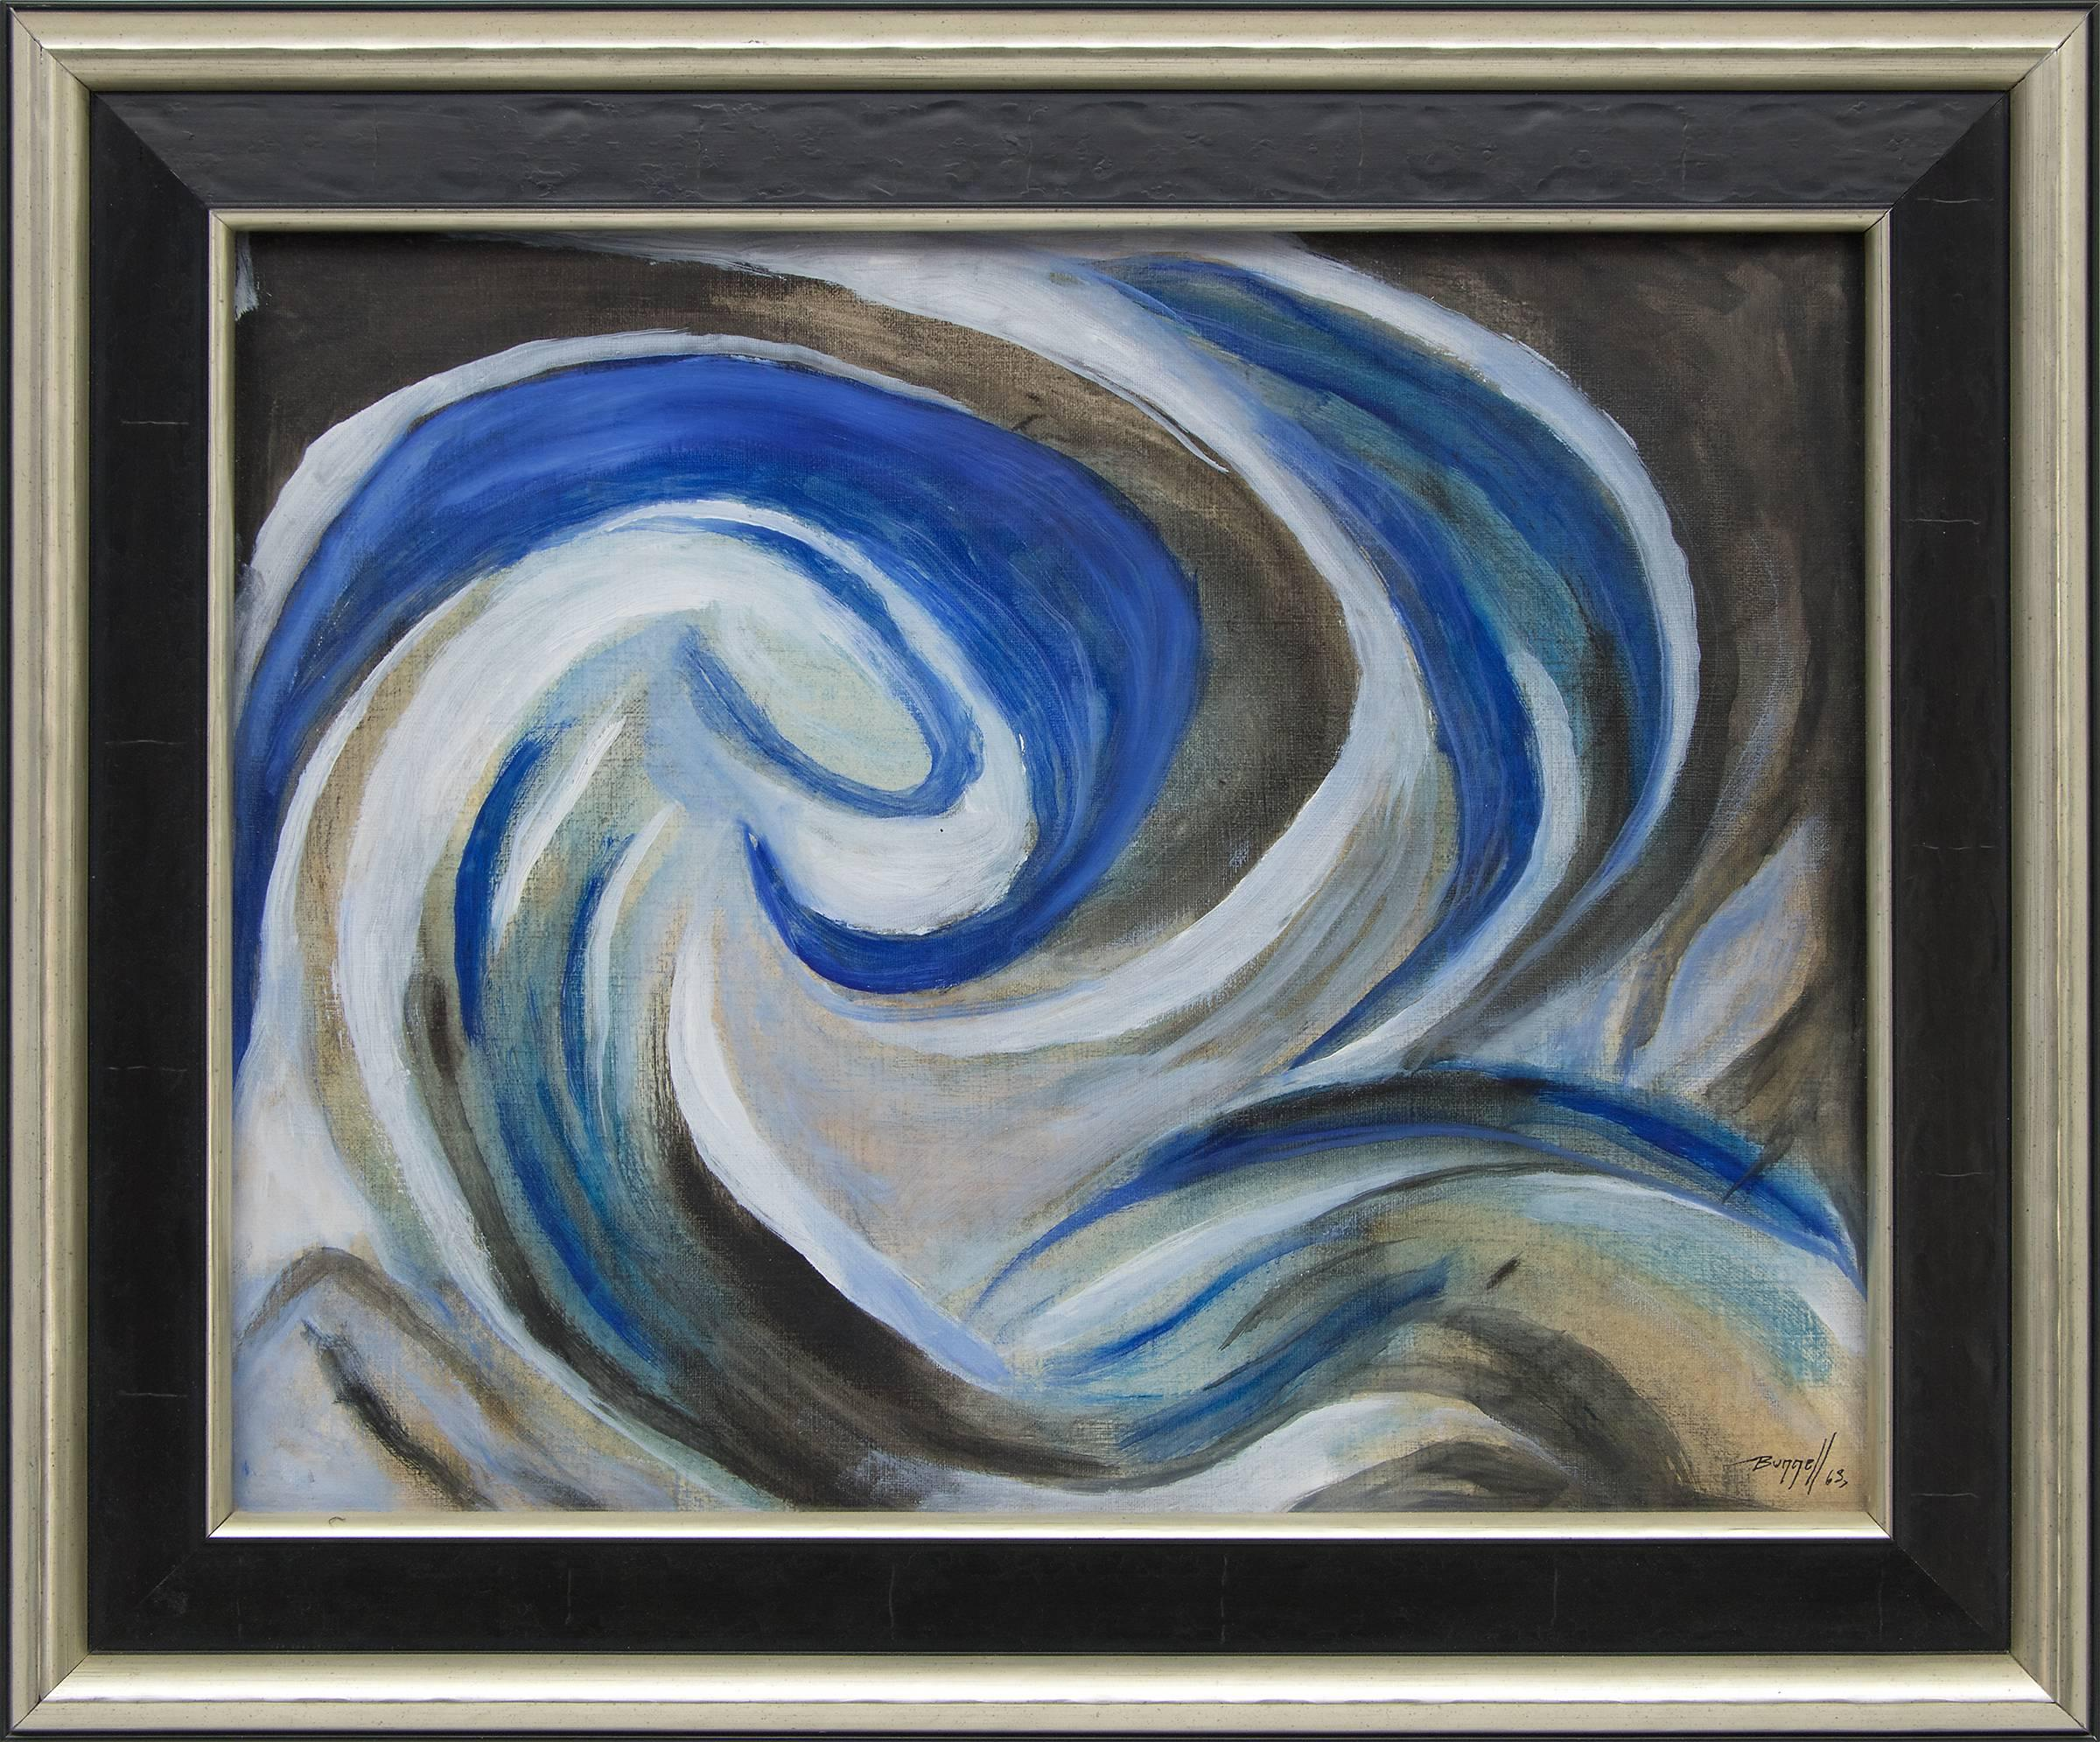 Untitled (Abstract with Blue, Gray, Black and White)